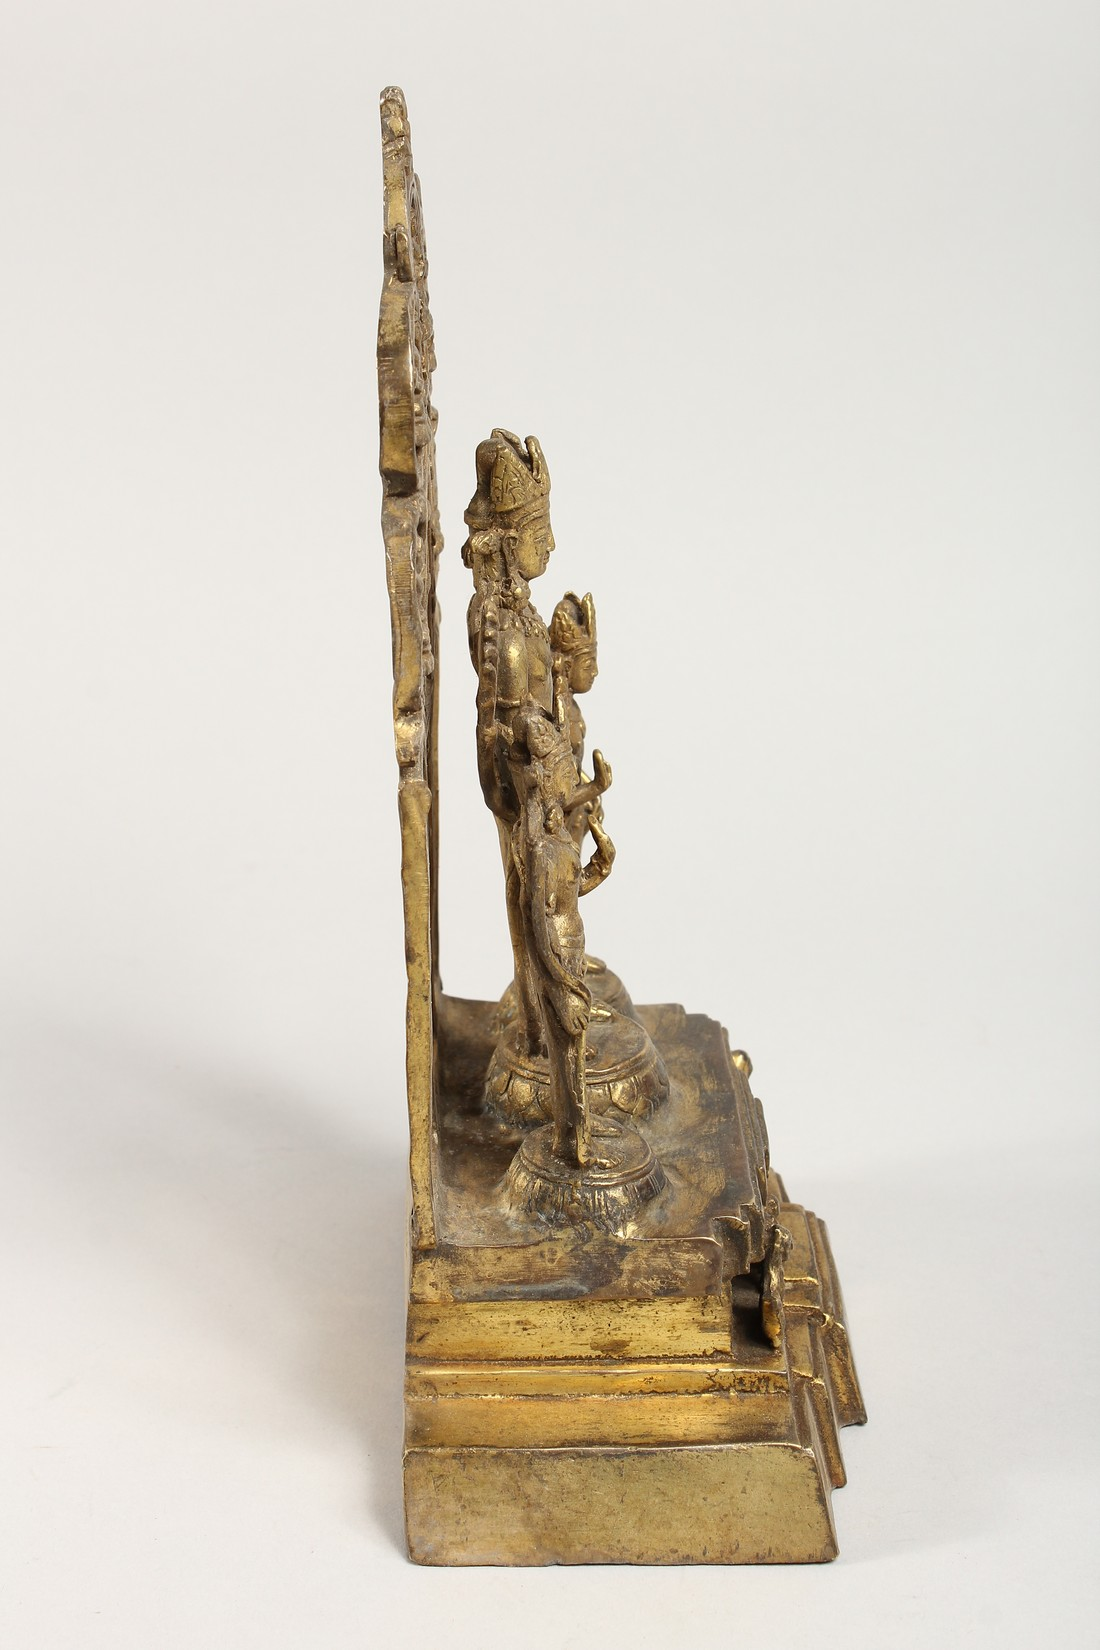 A CHINESE GILT BRONZE FIGURAL SHRINE 11ins high - Image 2 of 4